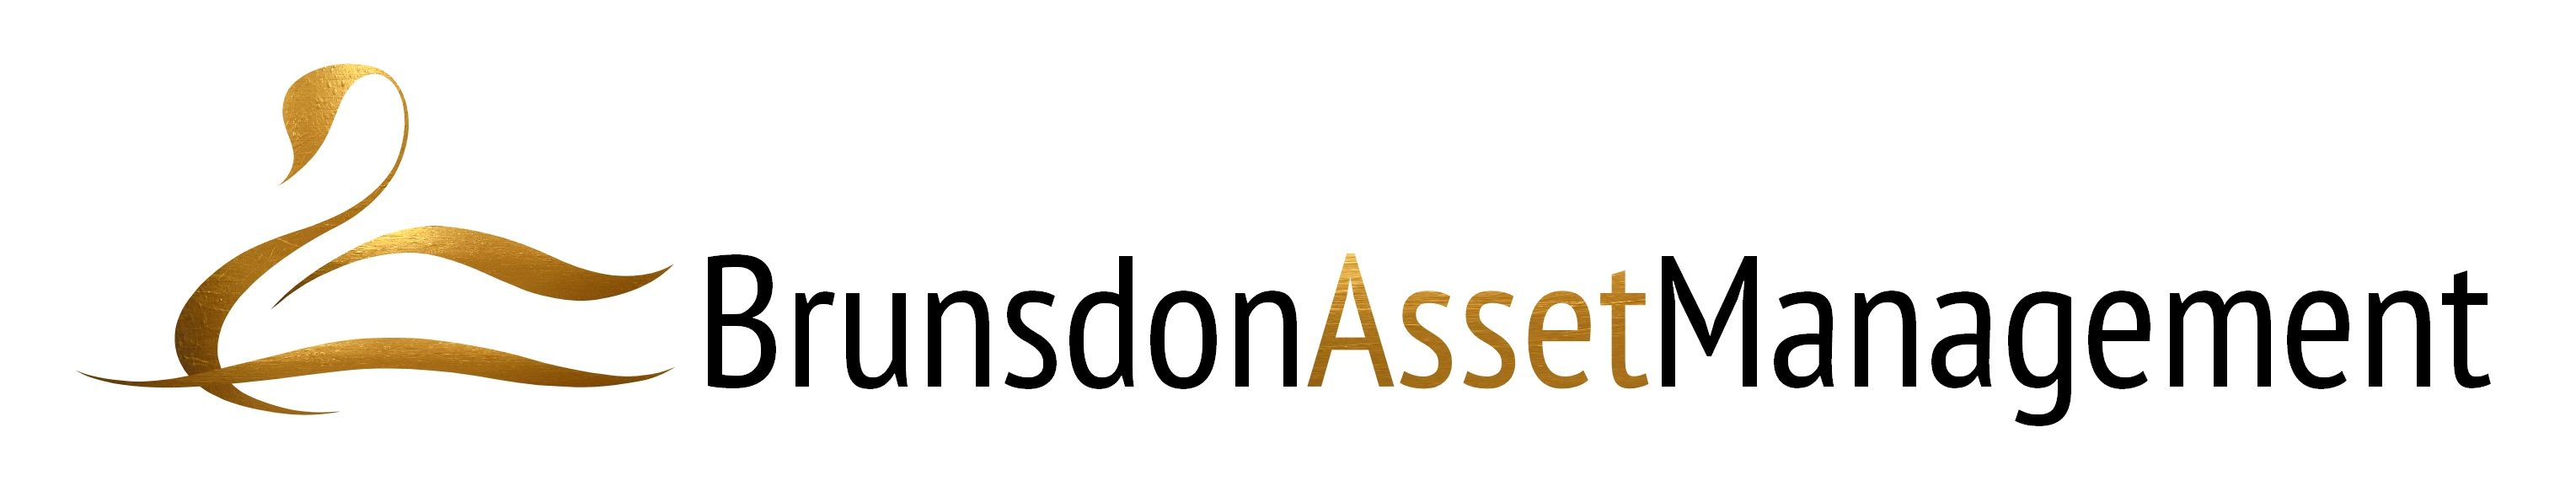 Brunsdon Asset Management